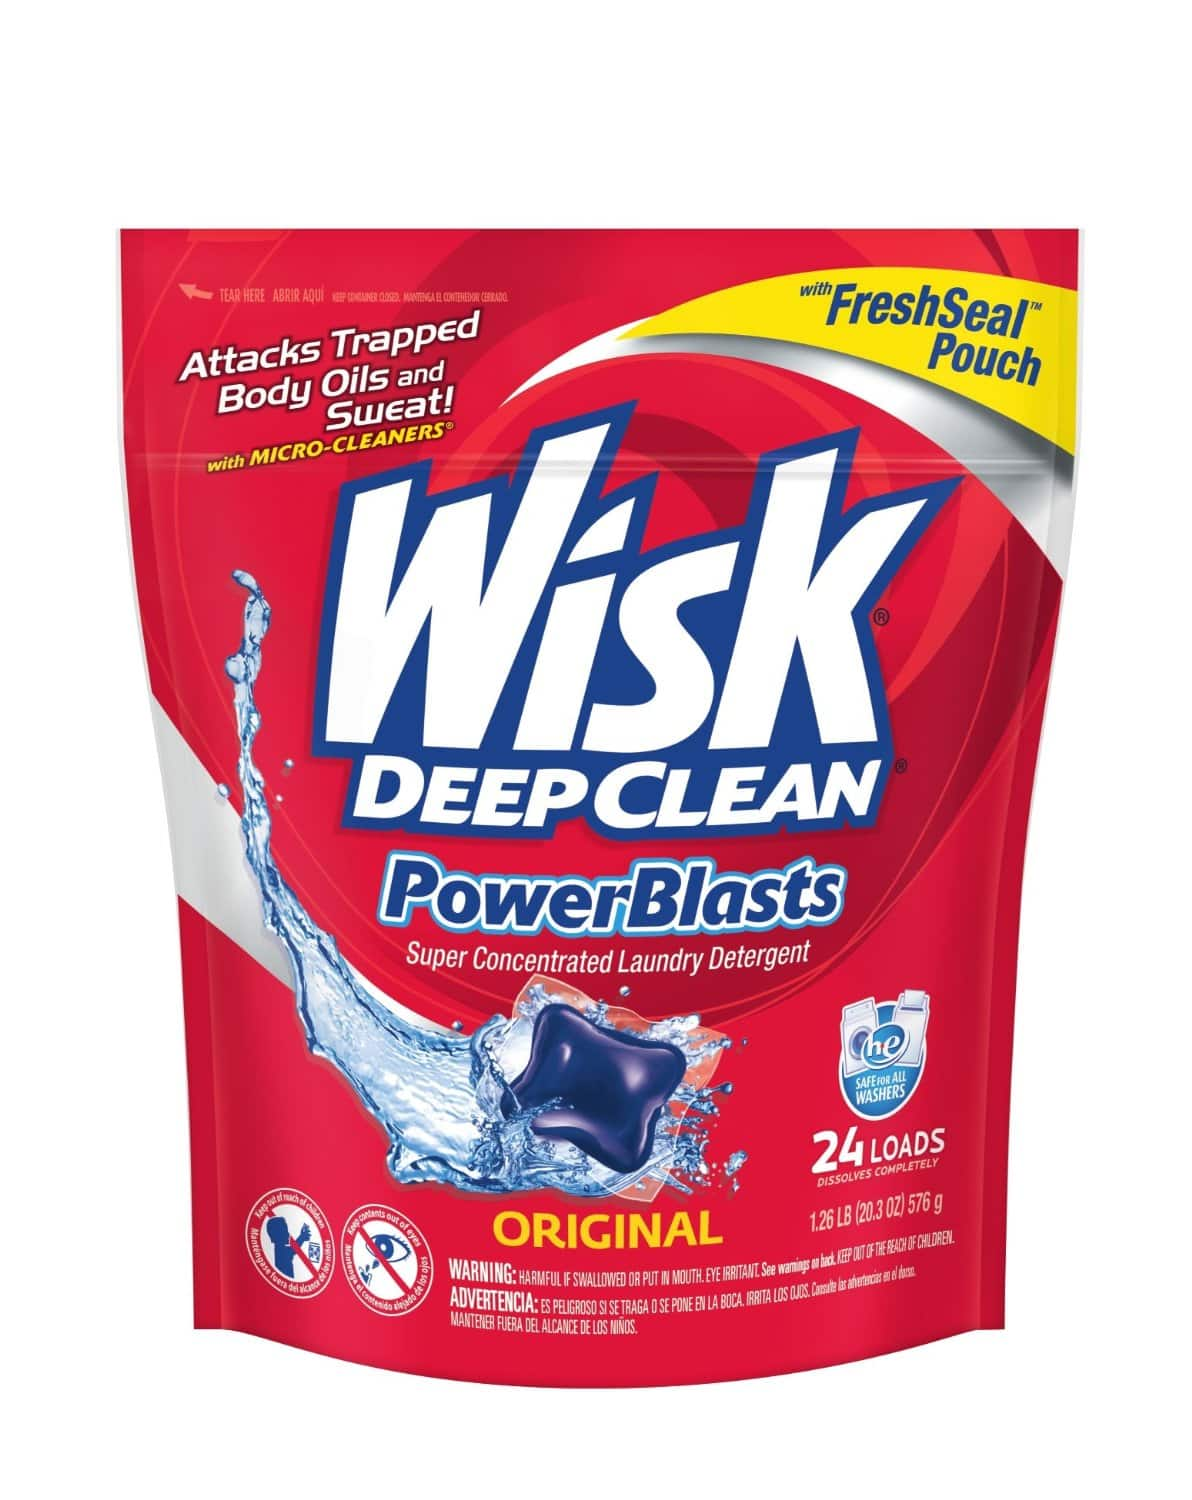 Wisk Deep Clean PowerBlasts Laundry Detergent, 24 Count $3.83 or less w/ S&S